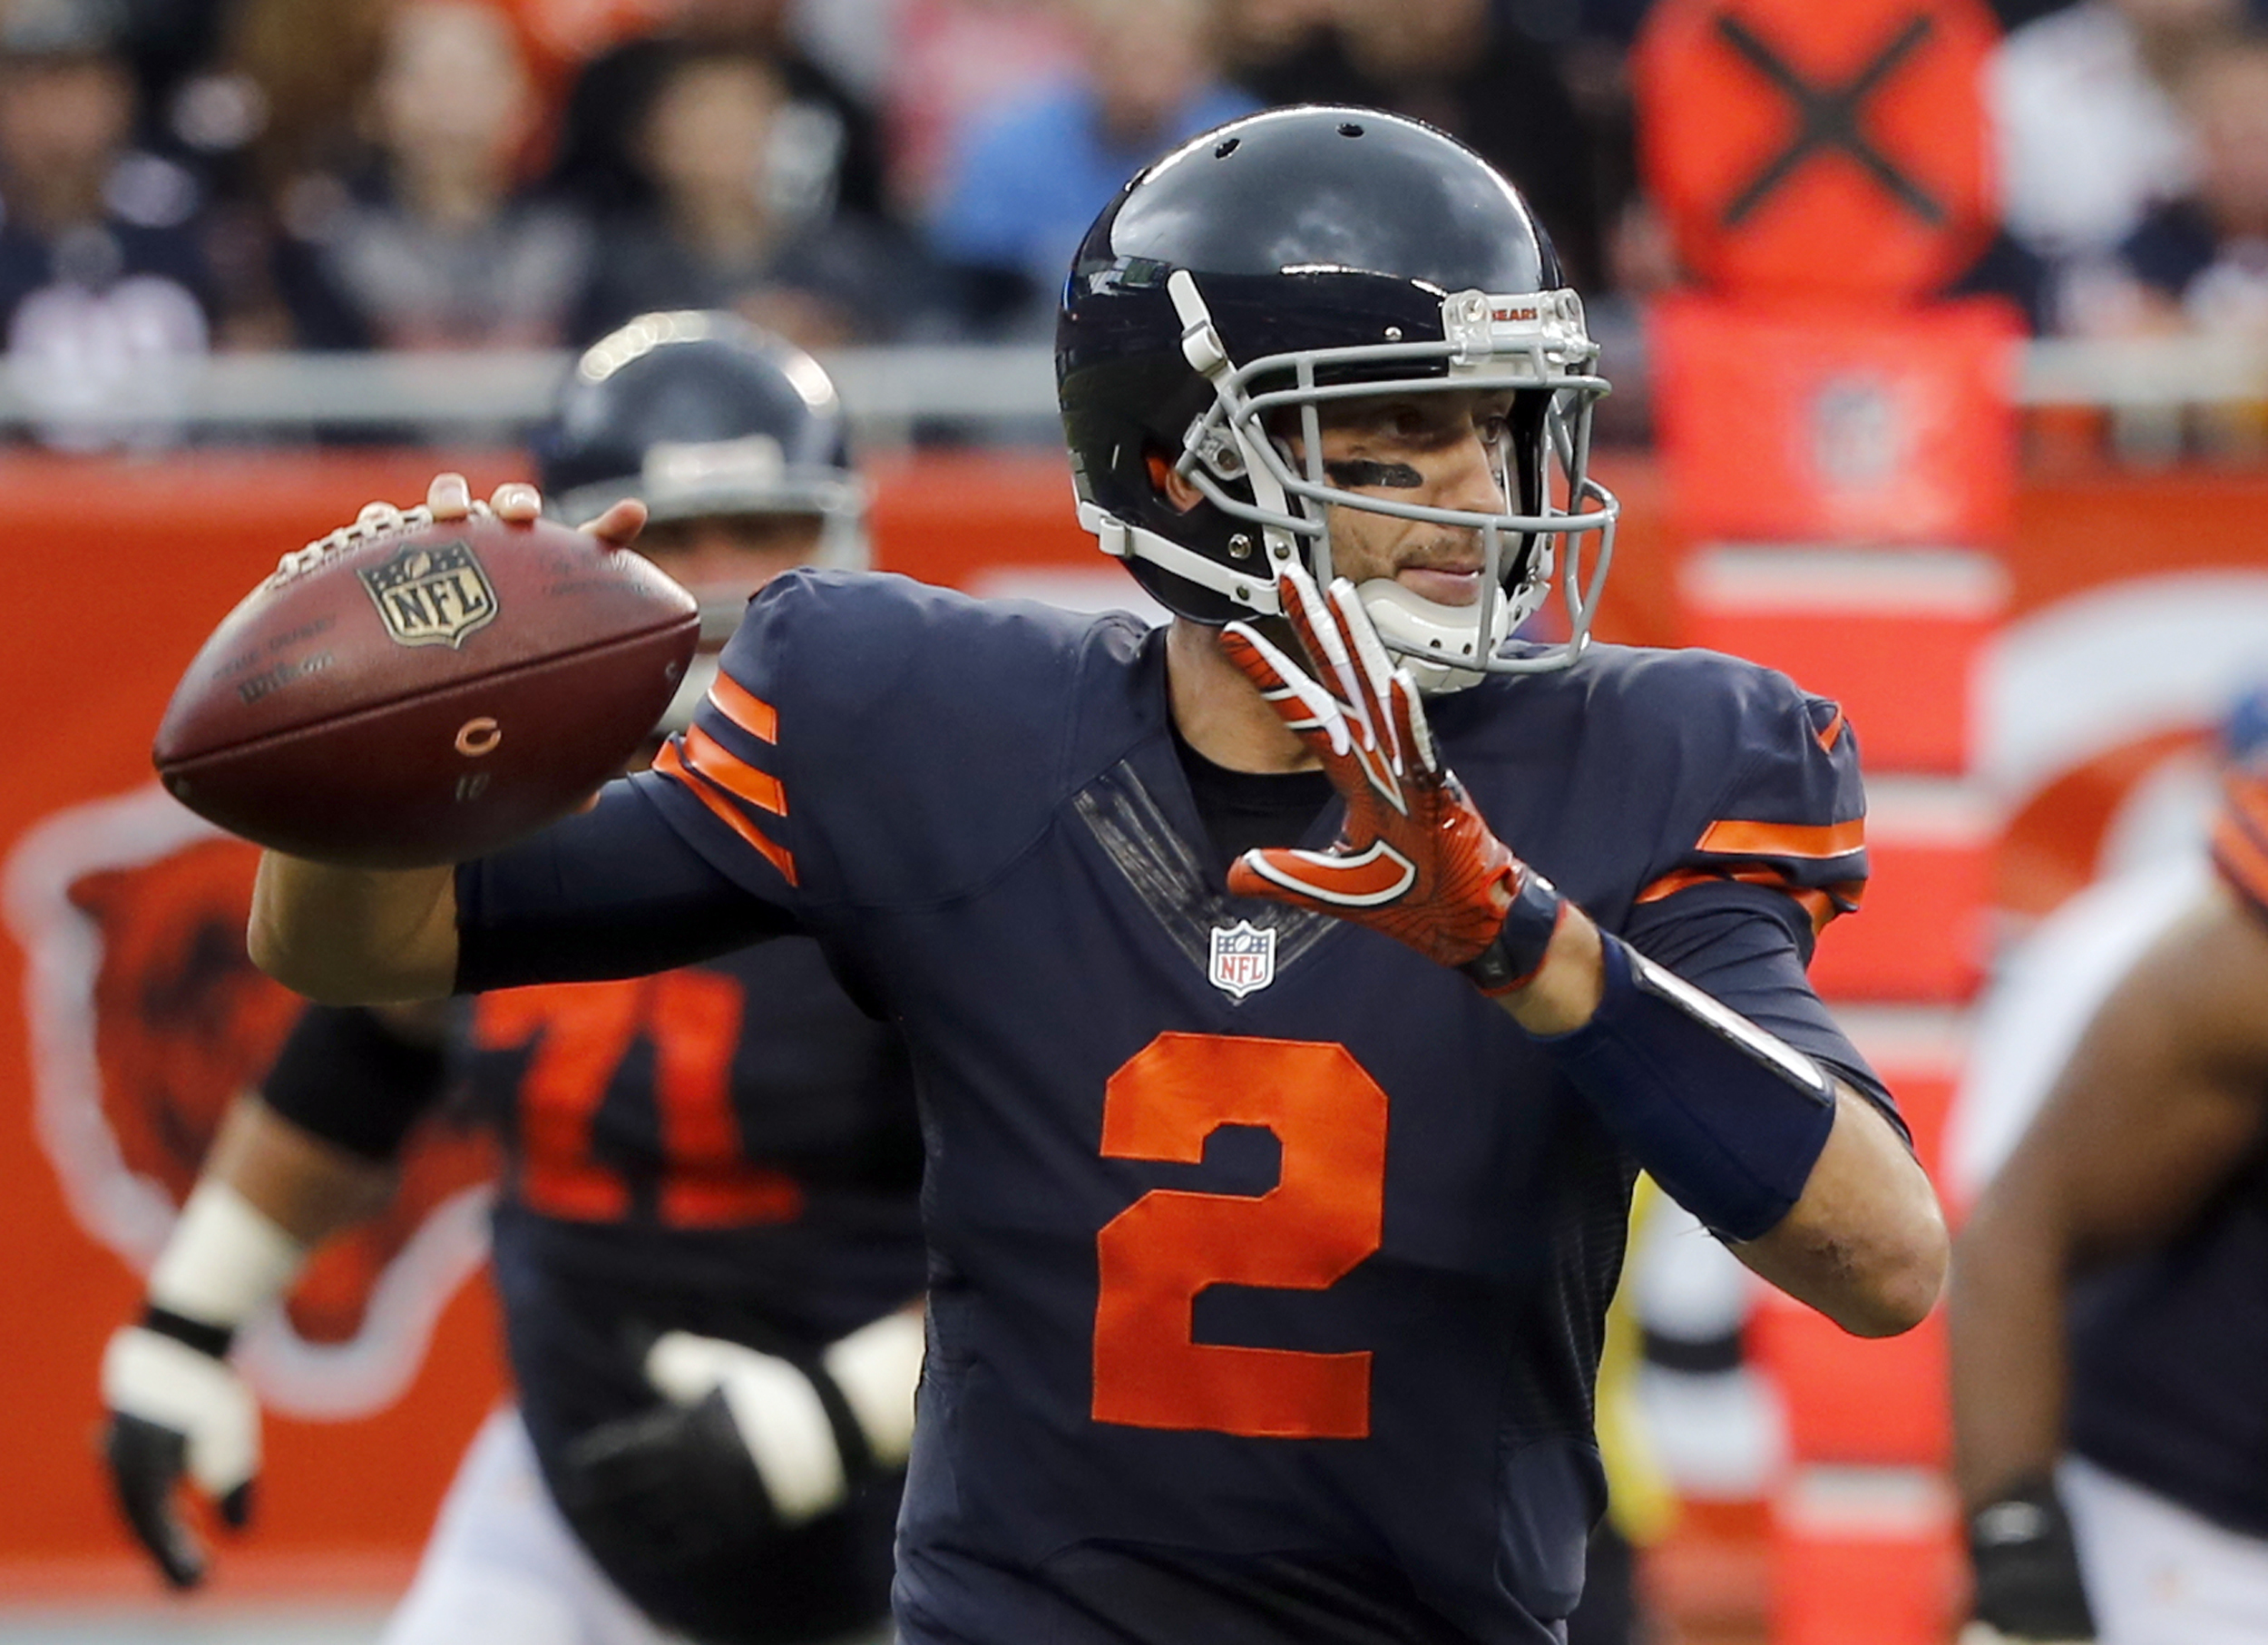 Chicago Bears quarterback Brian Hoyer (2) throws a pass during the first half of an NFL football game against the Detroit Lions, Sunday, Oct. 2, 2016, in Chicago. (AP Photo/Charles Rex Arbogast)